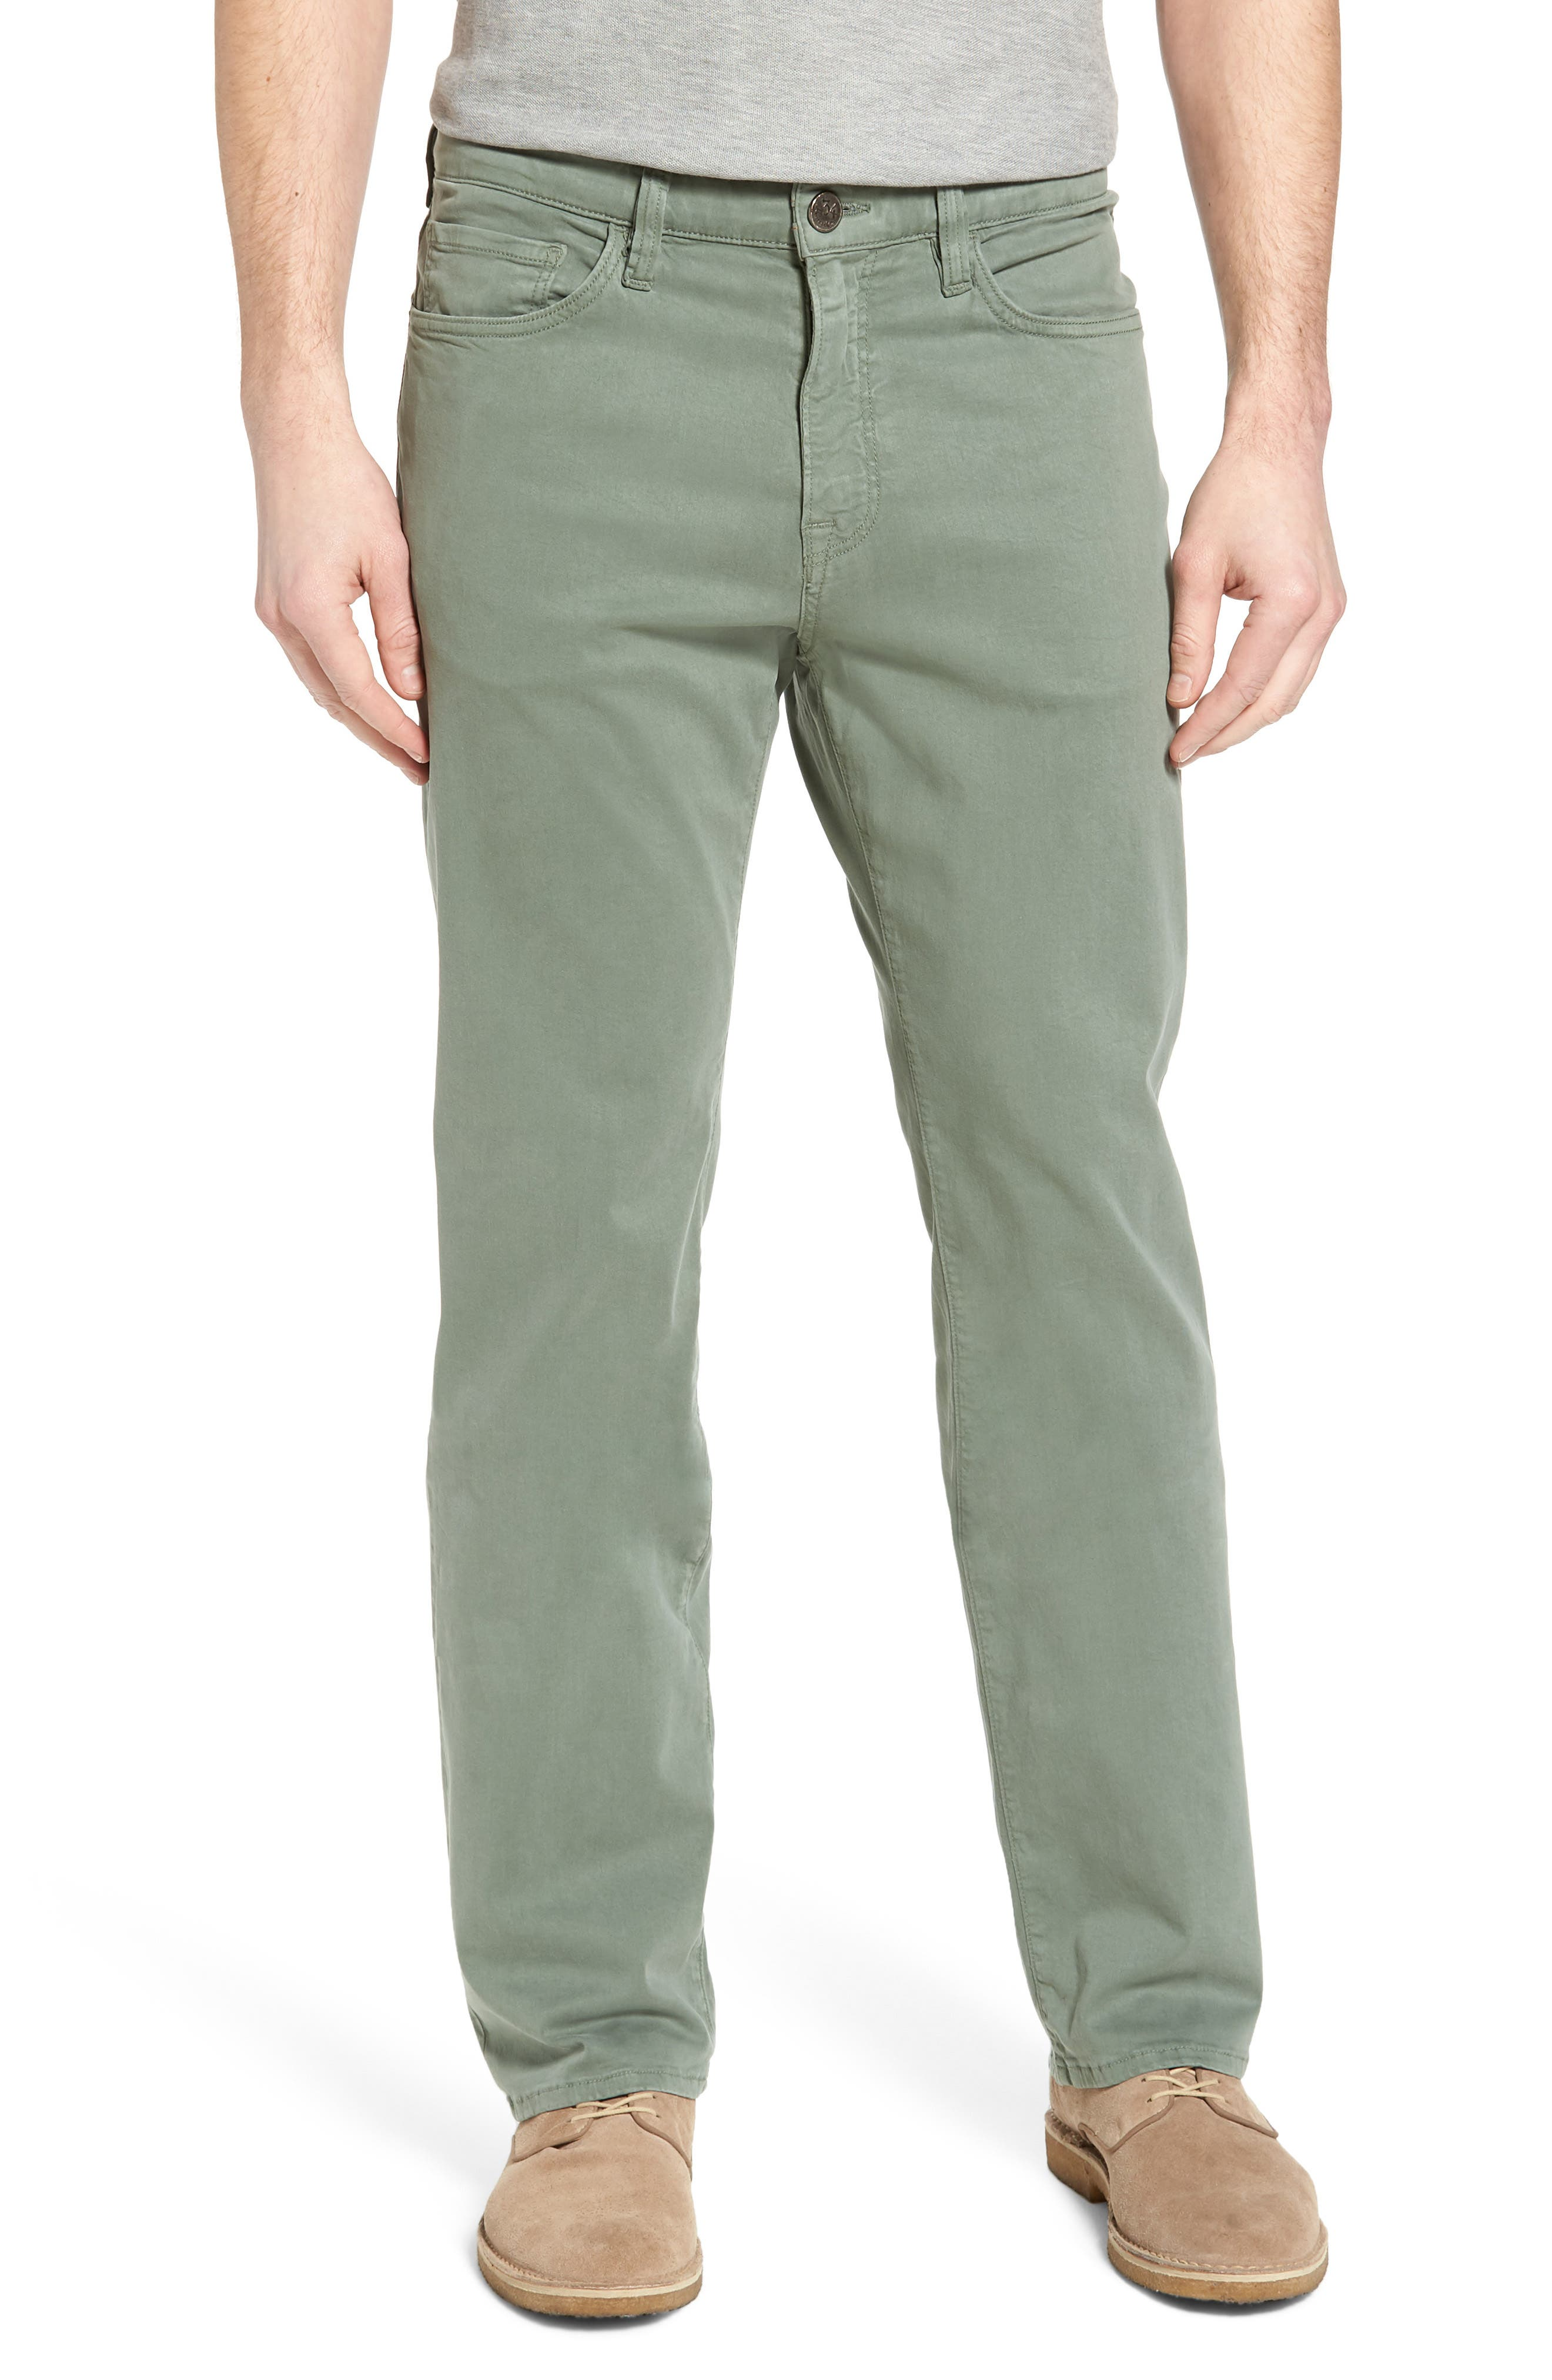 Charisma Relaxed Fit Twill Pants,                             Main thumbnail 1, color,                             Moss Twill